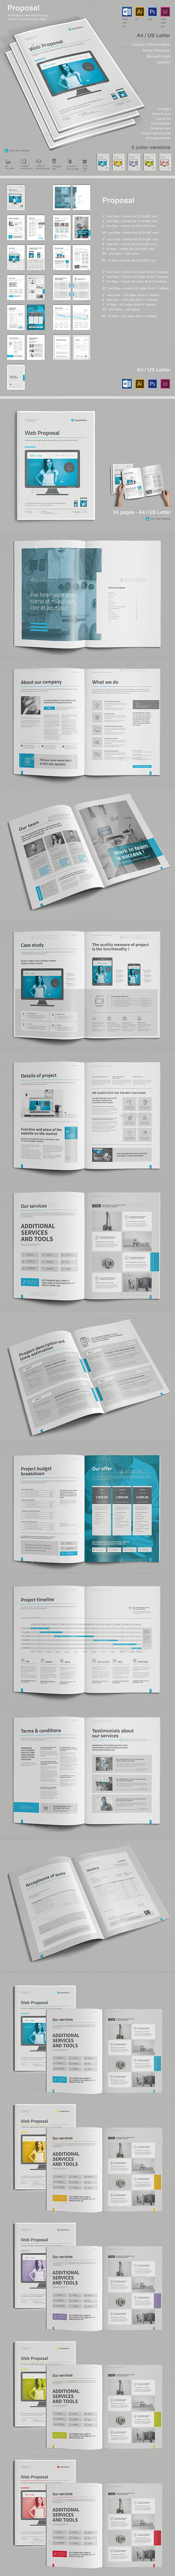 Web Proposal Template Psd Indesign Indd Ai Illustrator Proposal